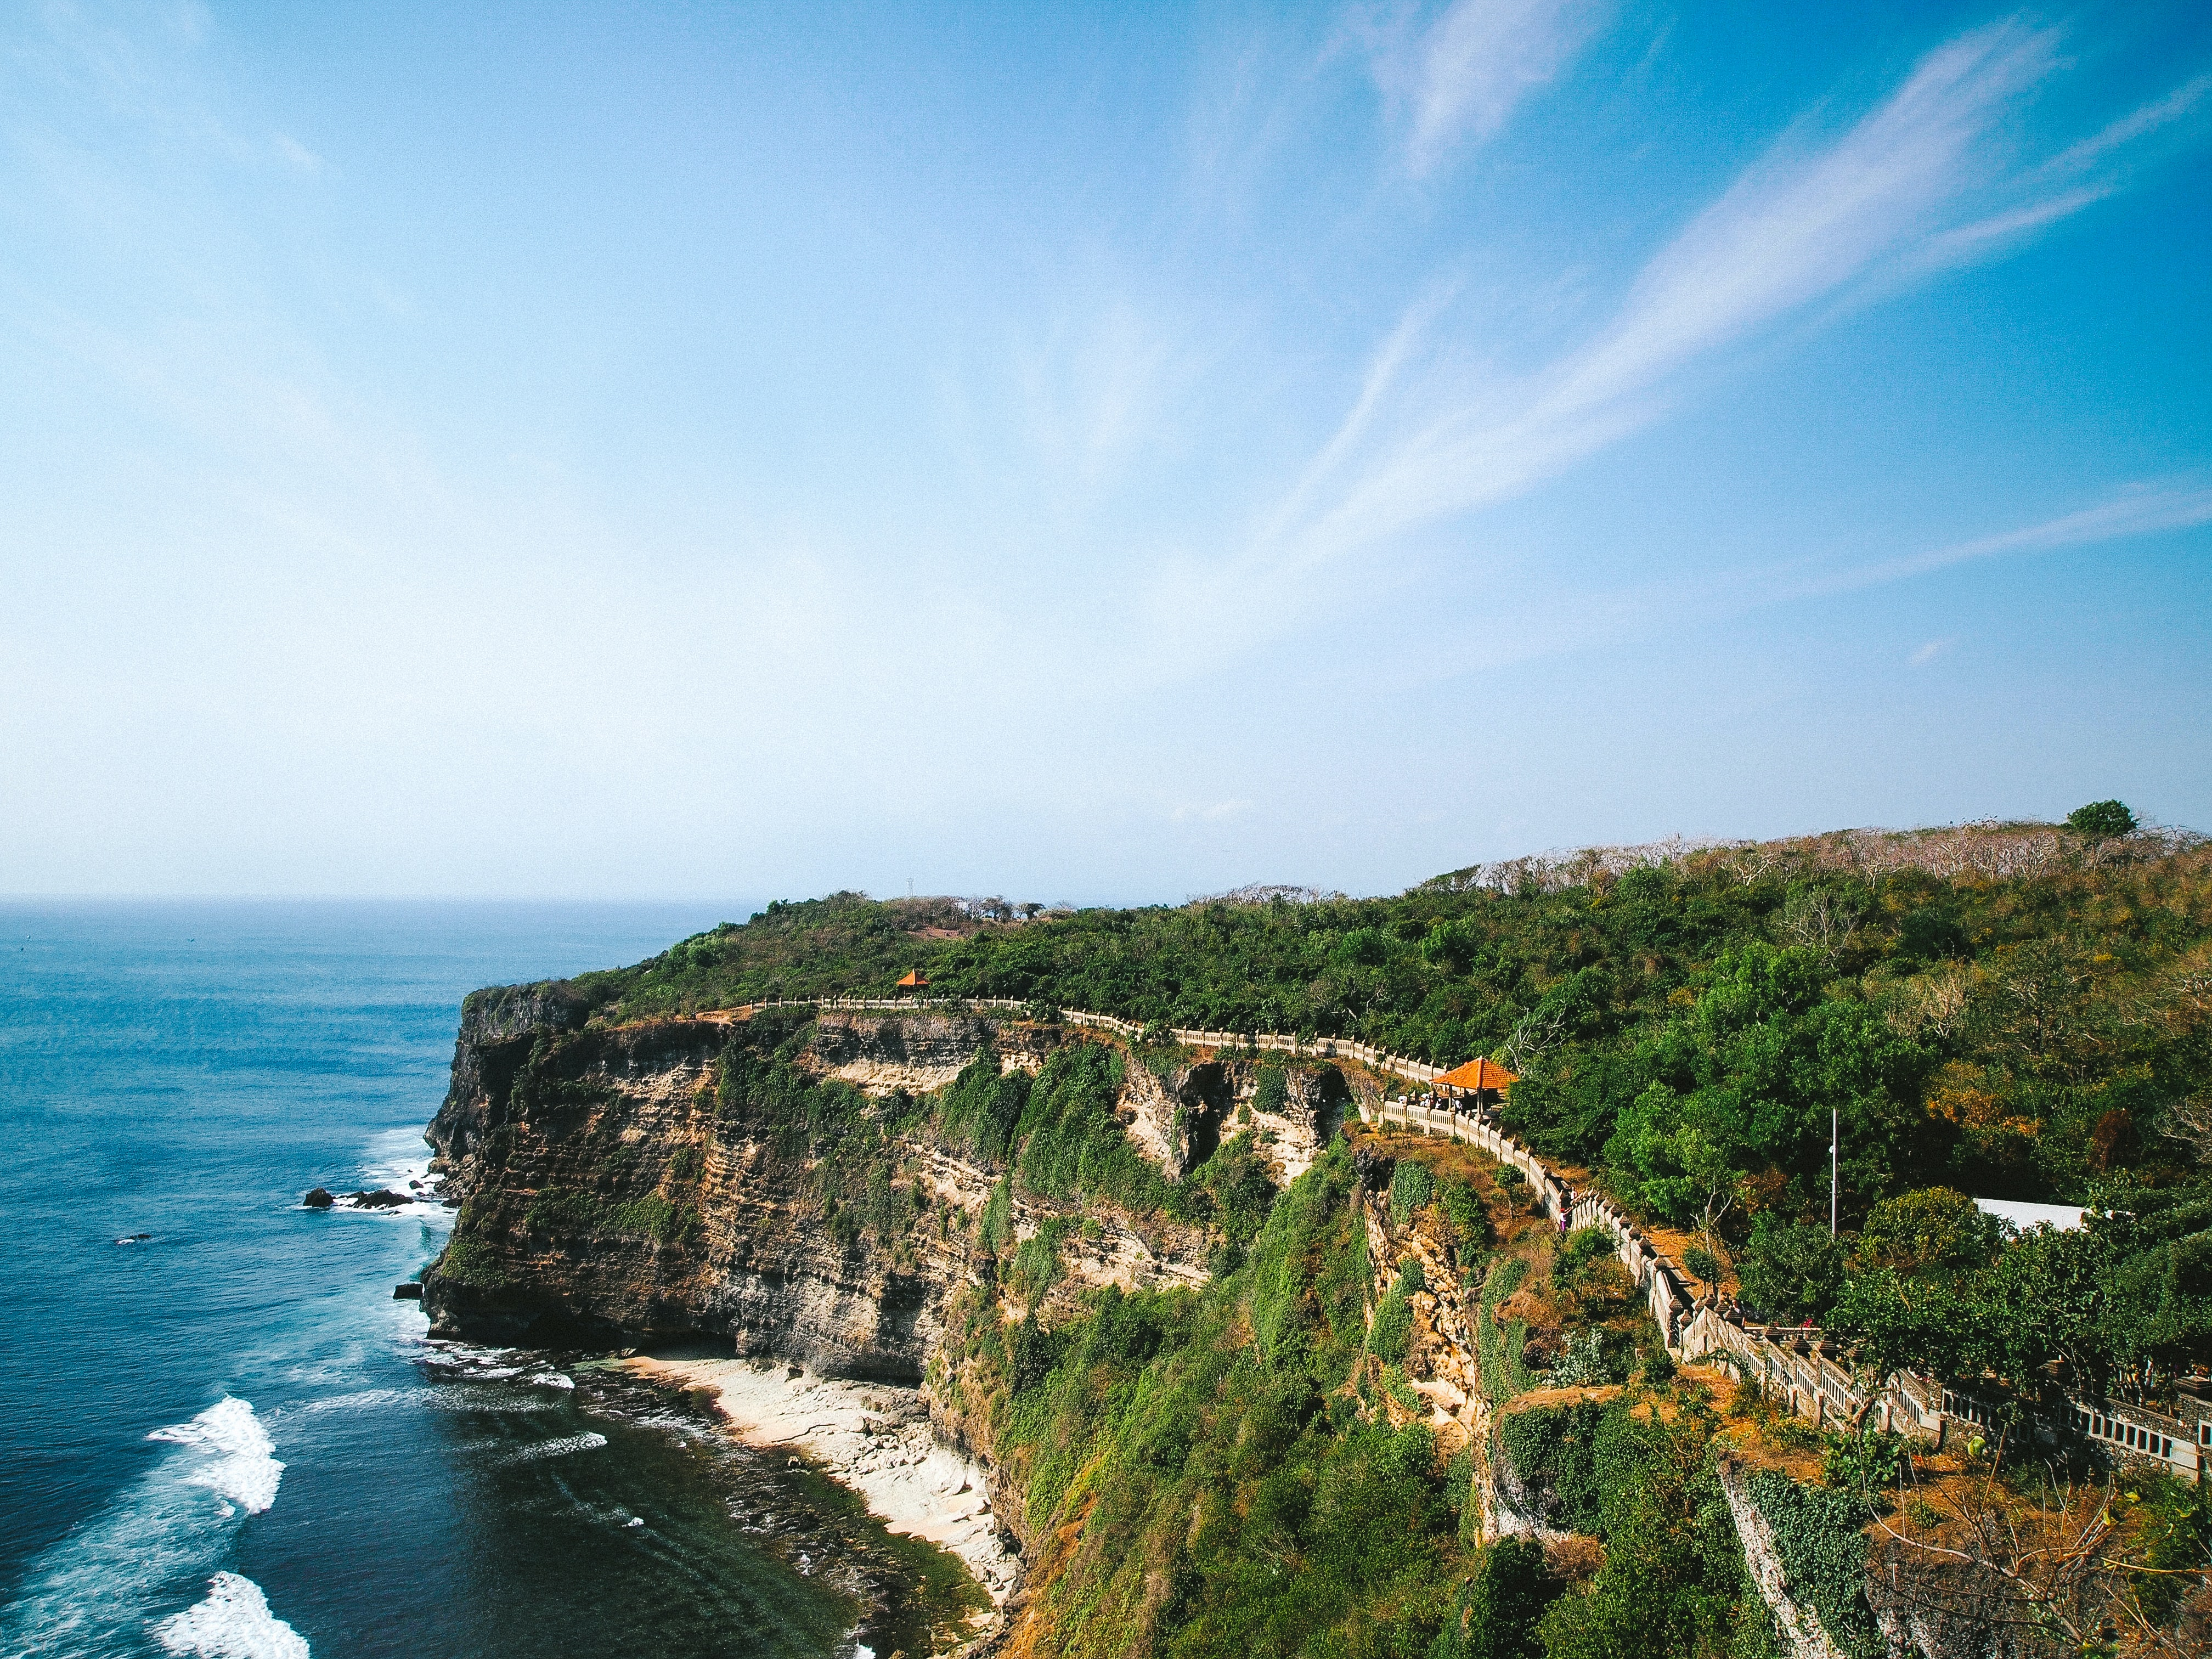 Guide to Bali, Indonesia